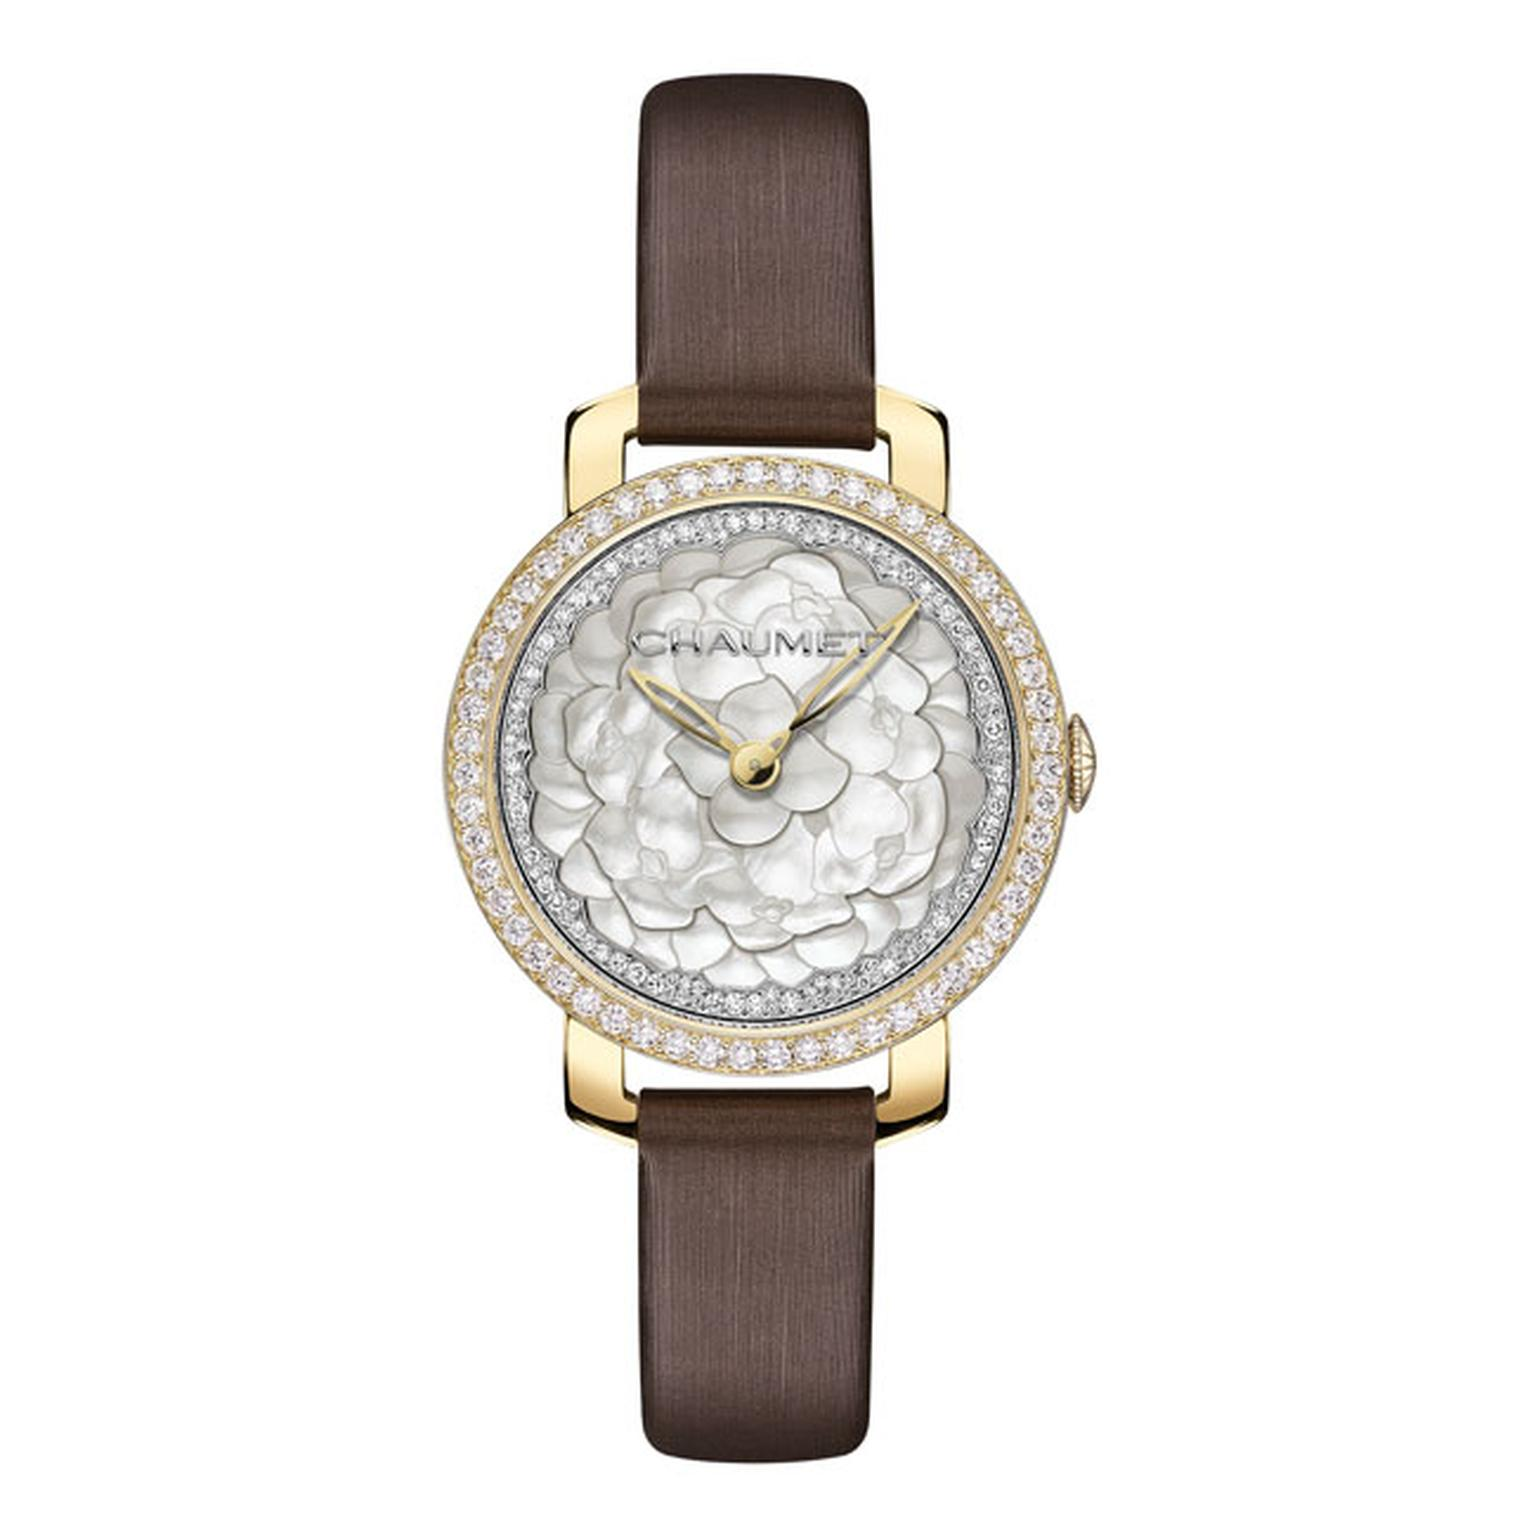 Chaumet Hortensia watch with brown strap_main